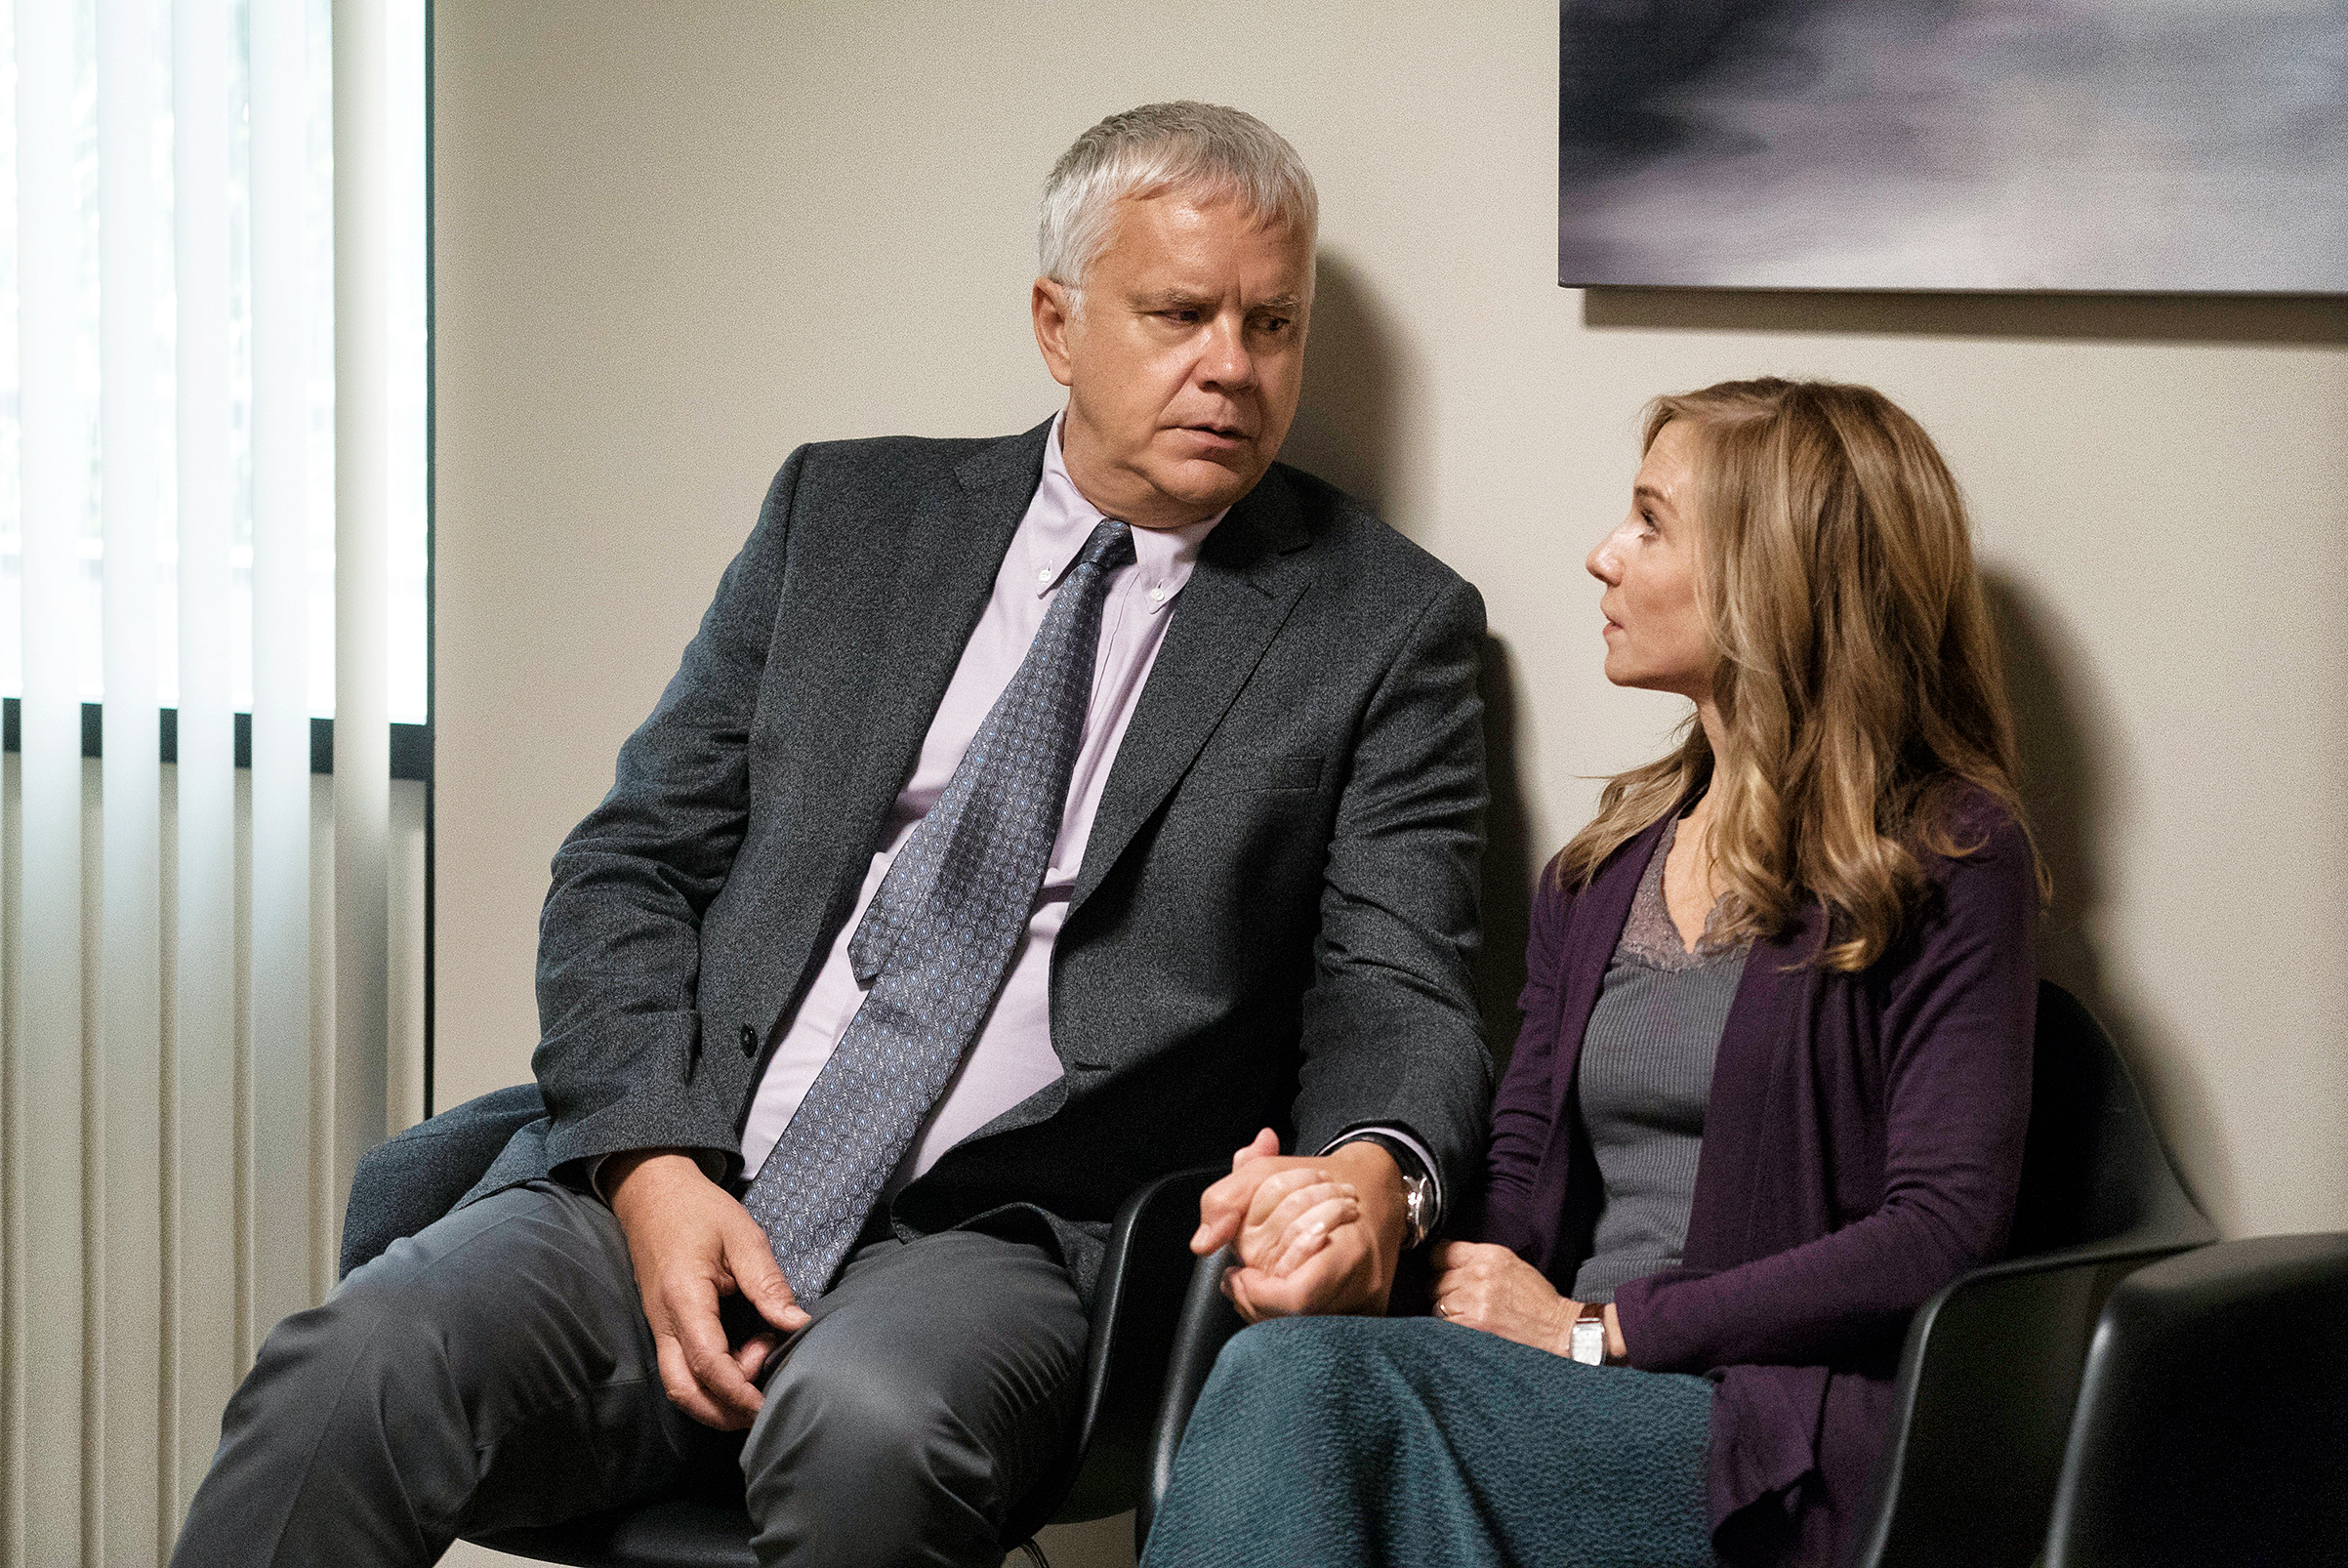 Life in the present: Greg (Tim Robbins) and his wife Audrey (Holly Hunter) in Here and Now